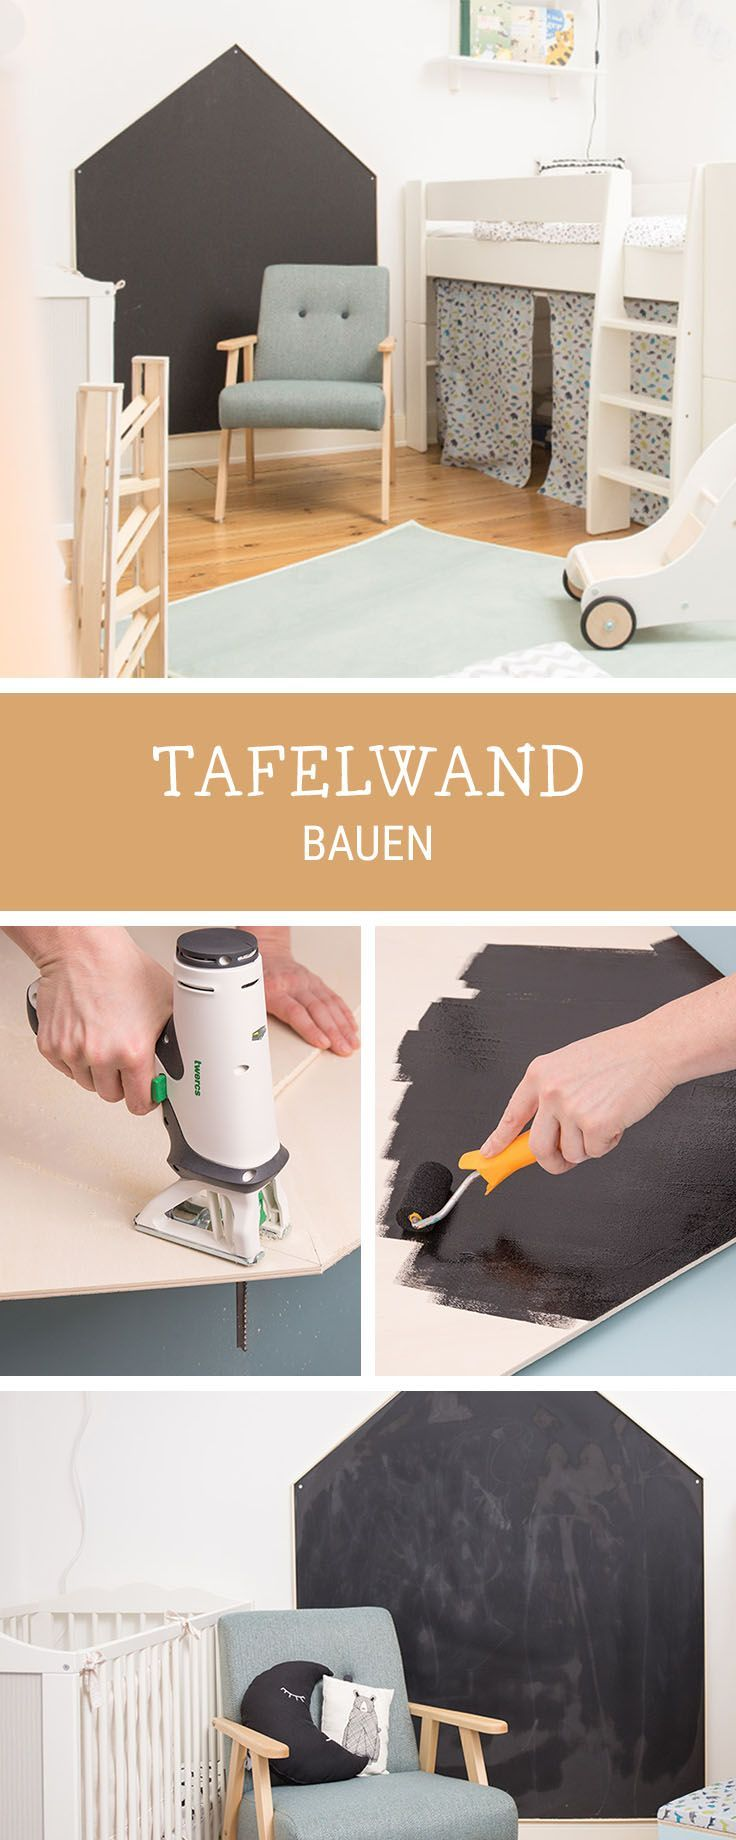 Diy f rs kinderzimmer tafelwand zum beschreiben bauen how to build a panel wall for the - Kinderzimmer diy ...